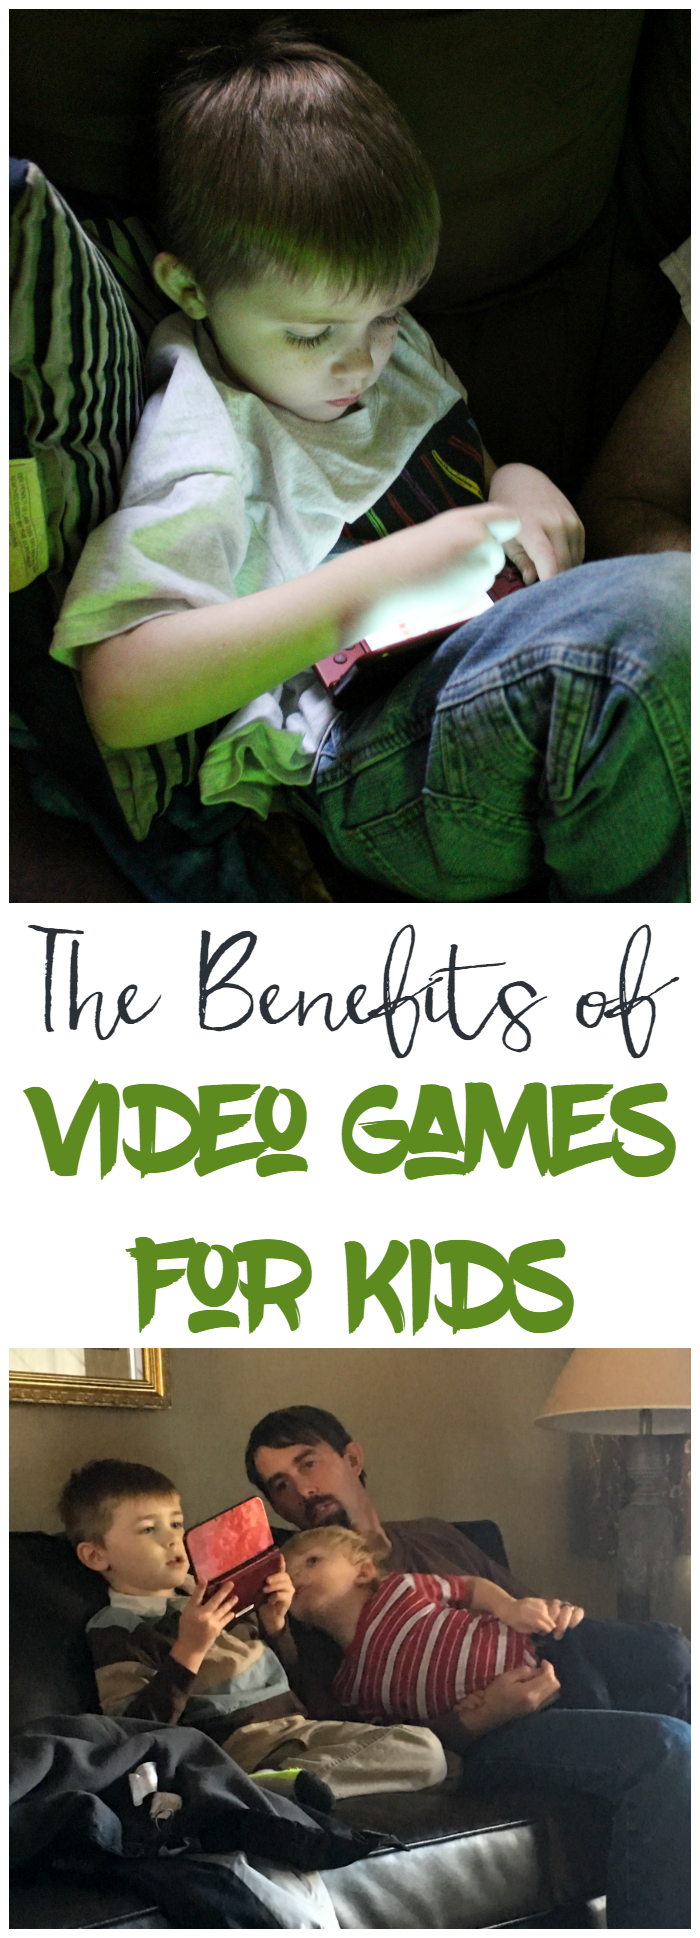 Video games are not all bad for kids! There are definitely benefits to kids playing video games.